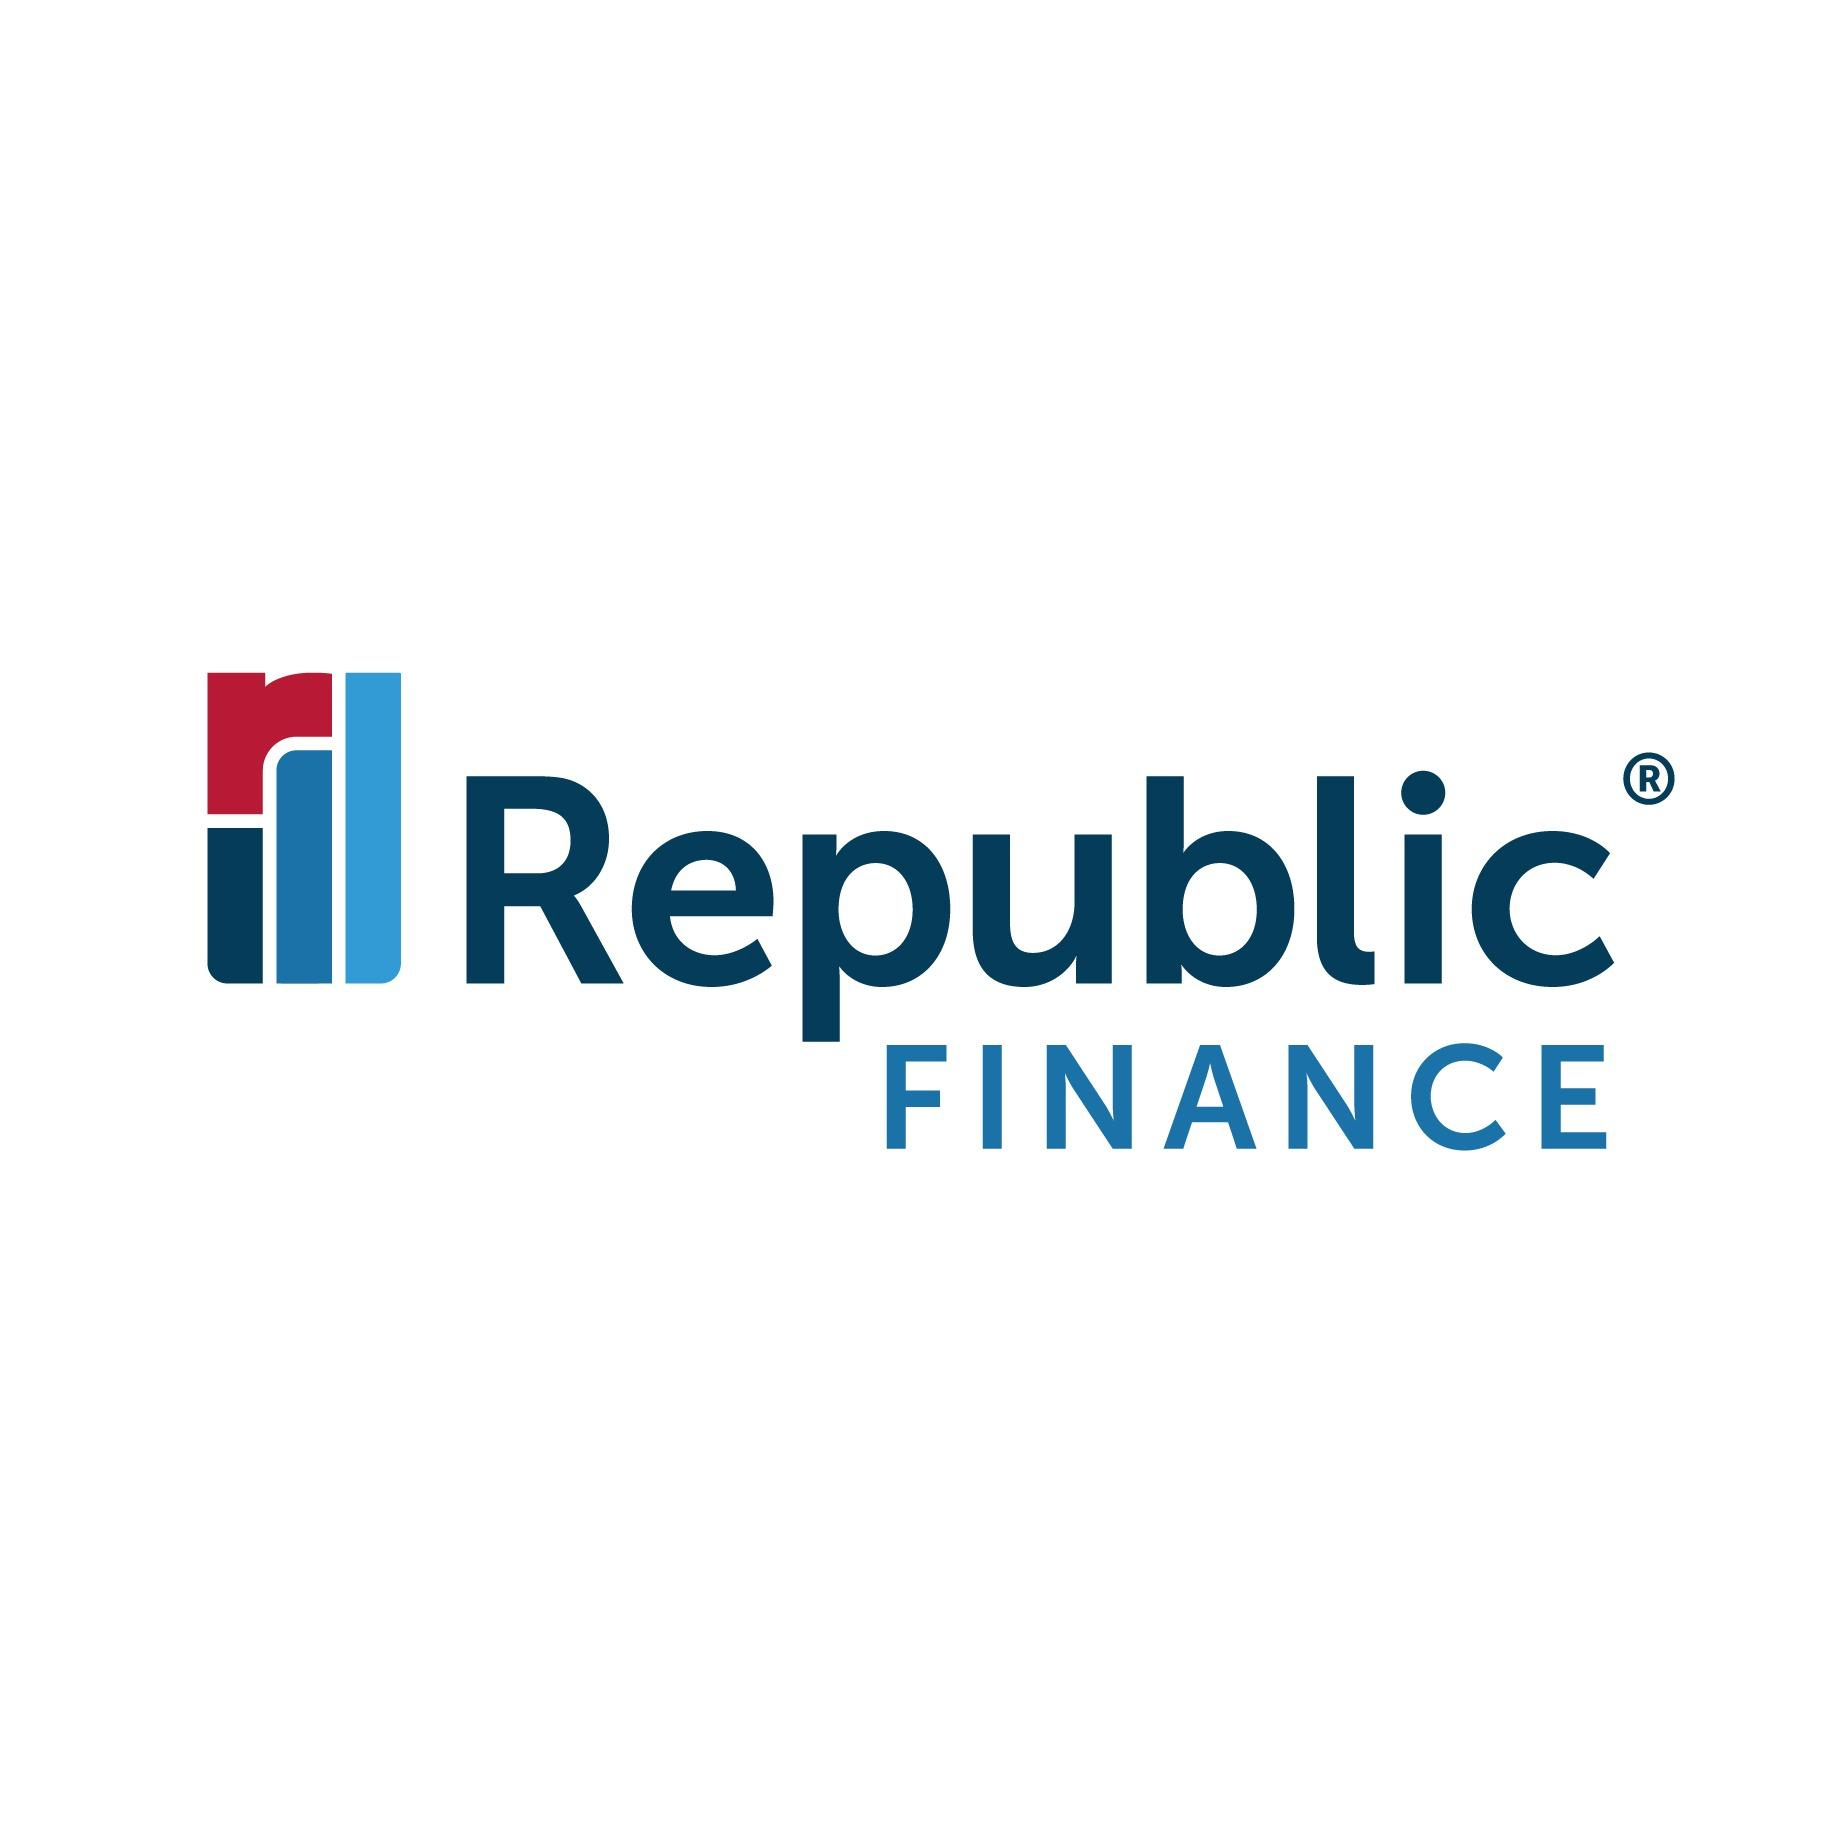 Republic Finance - Metairie, LA 70002 - (504)889-7656 | ShowMeLocal.com